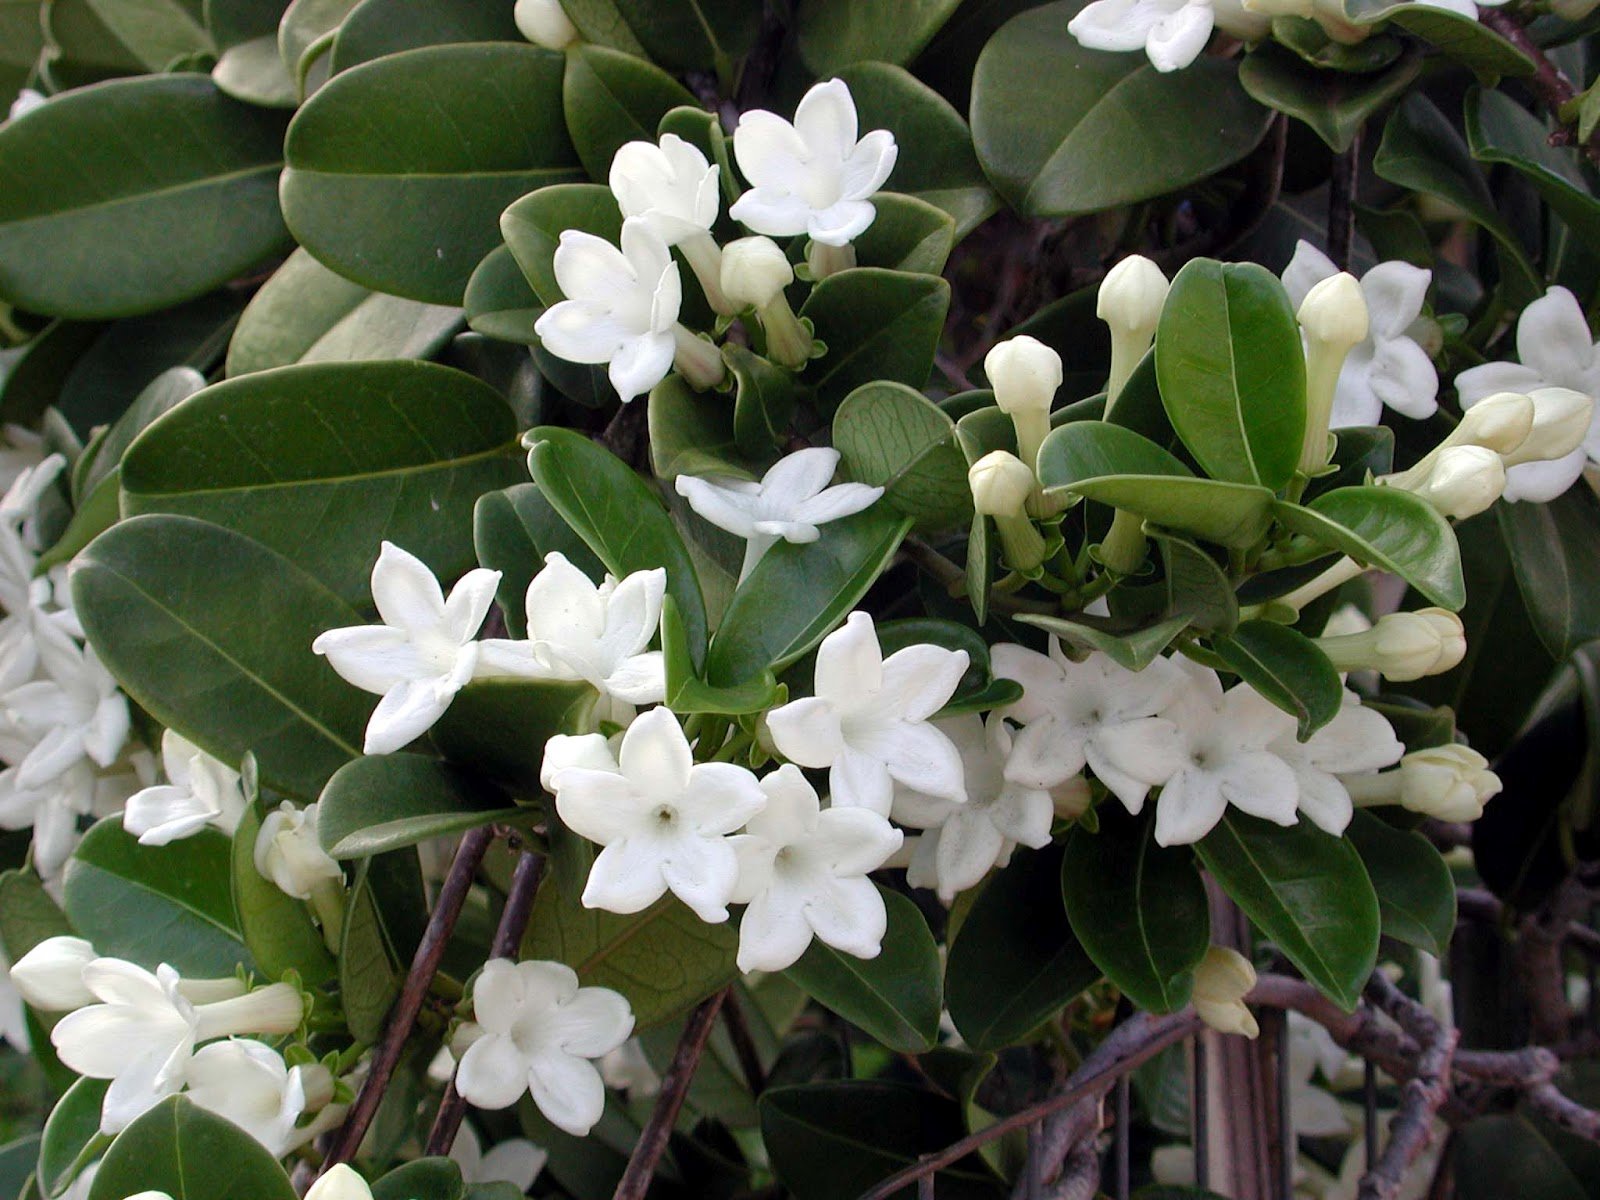 Stephanotis by any other name is marsdenia hawaii horticulture stephanotis flowers are most abundant in spring and early summer but a spattering of flowers izmirmasajfo